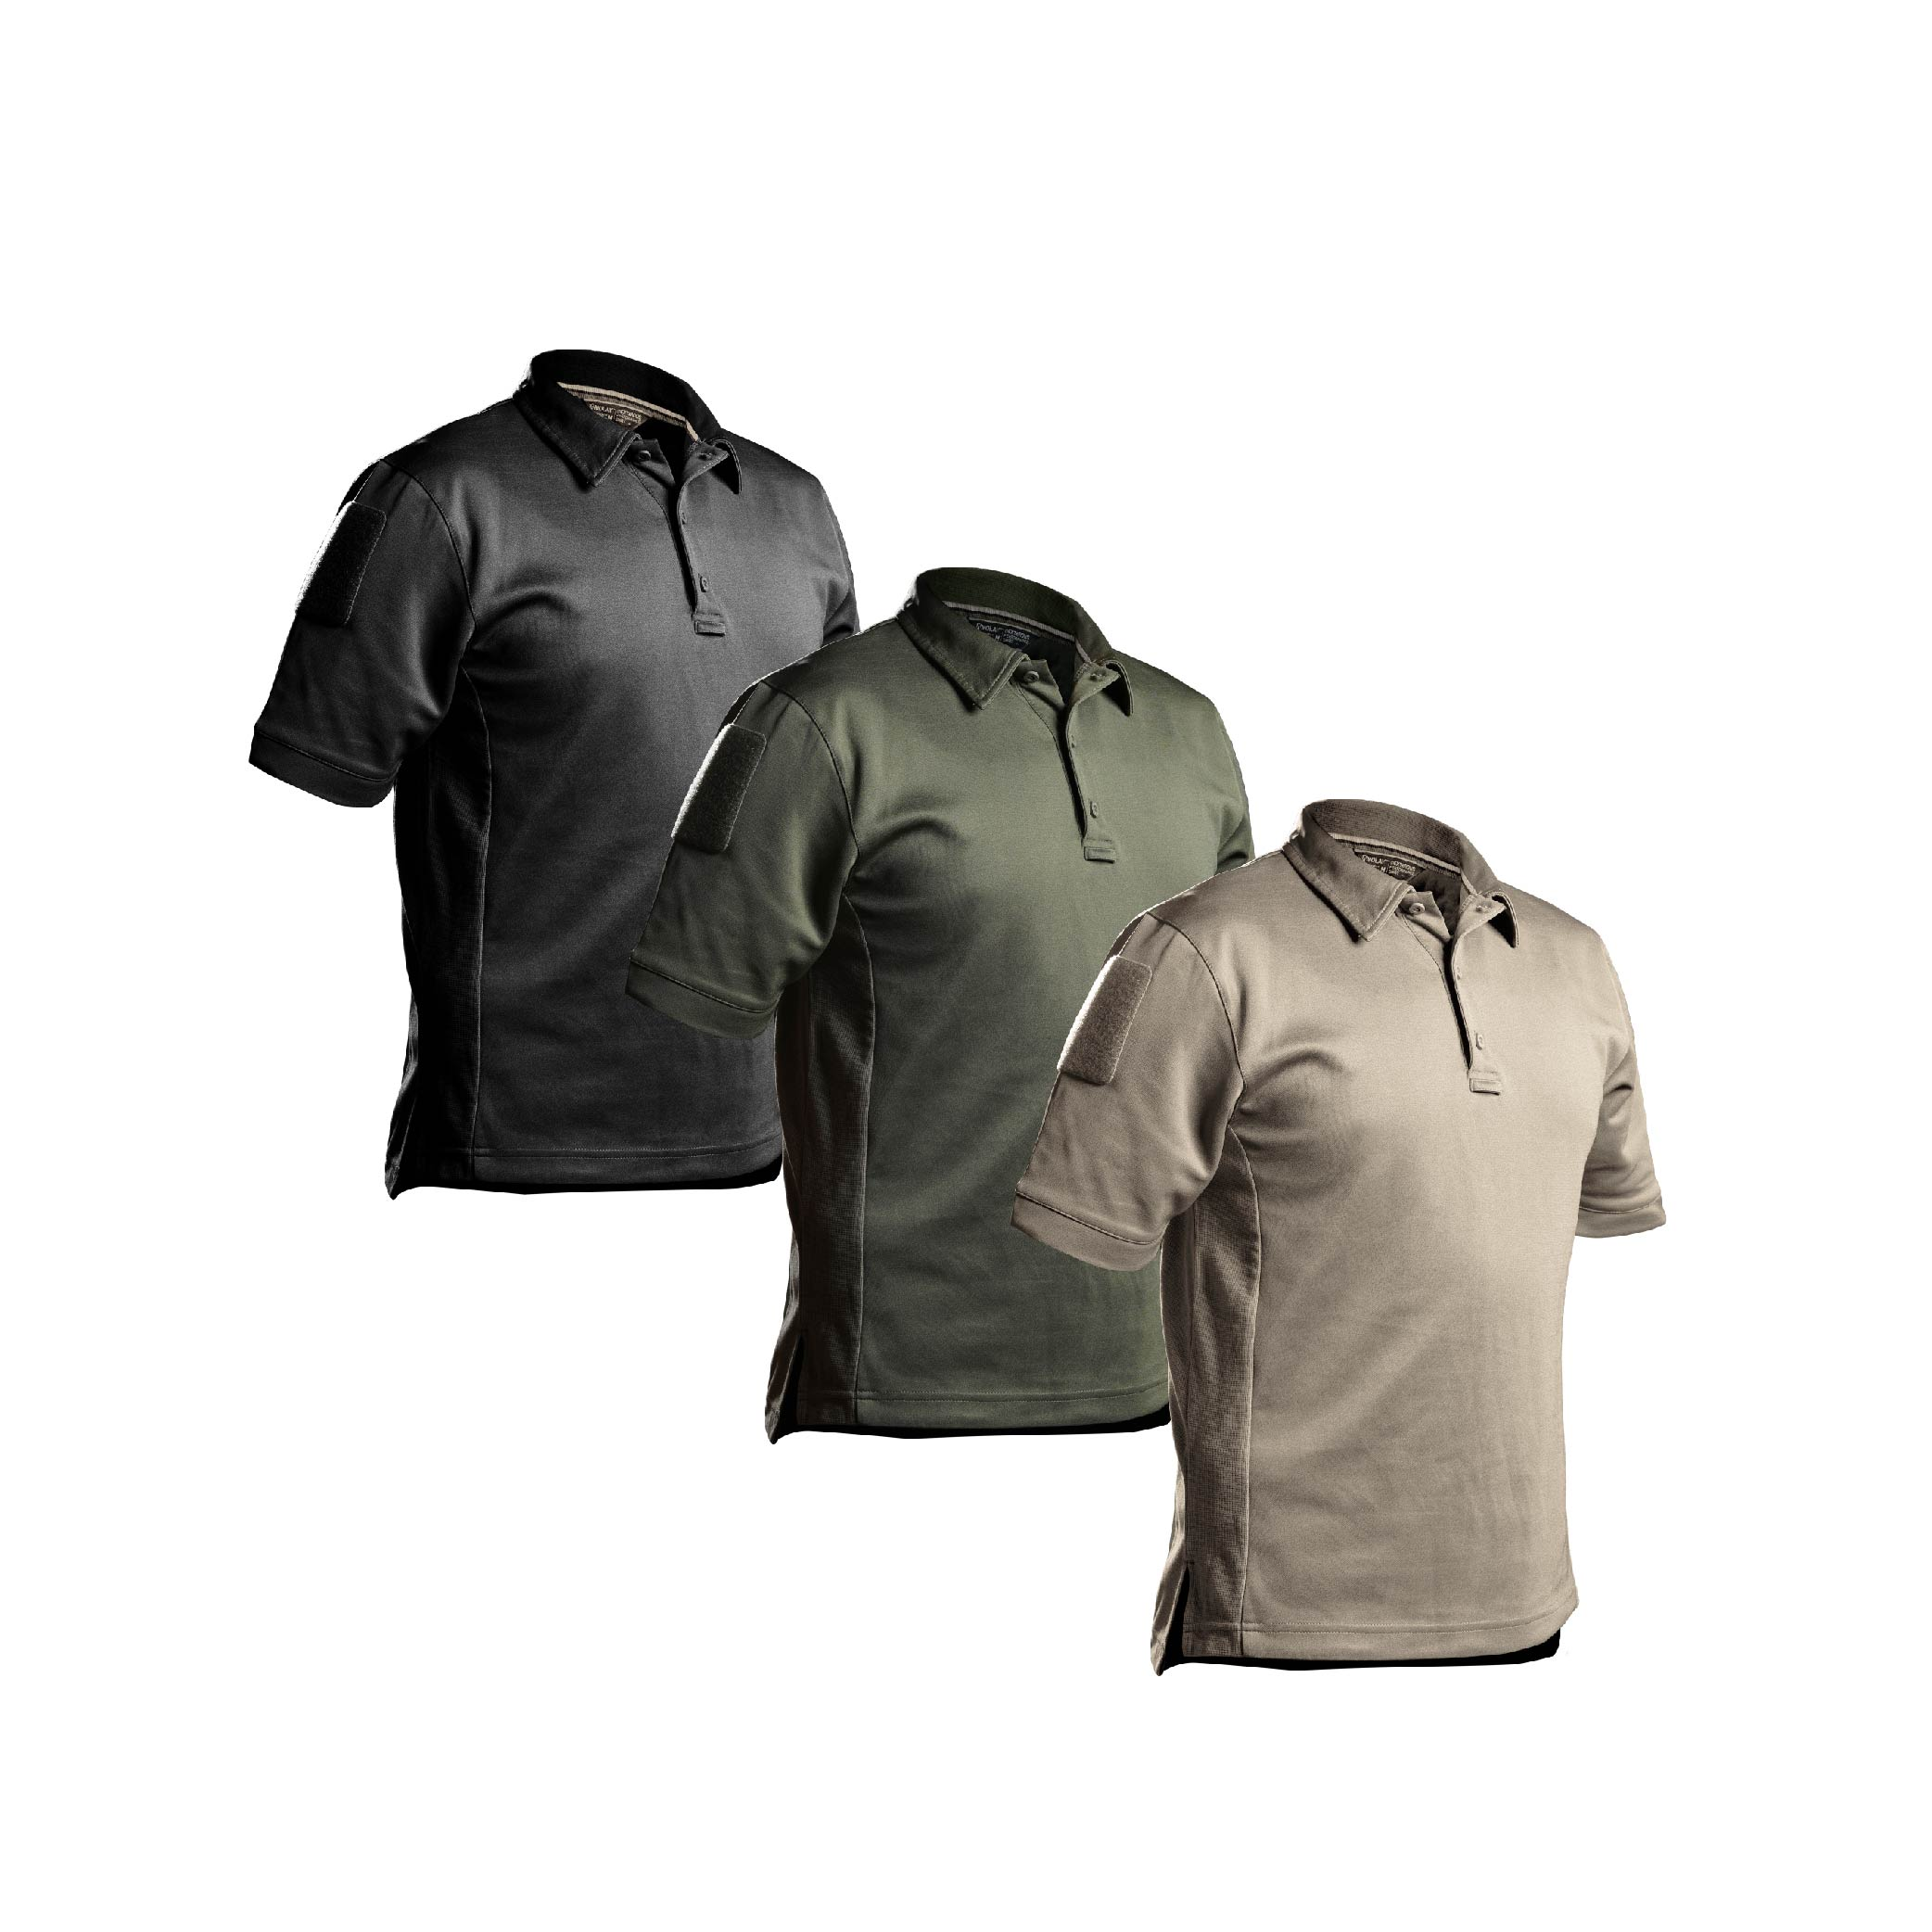 Dexterous Performance Shirt